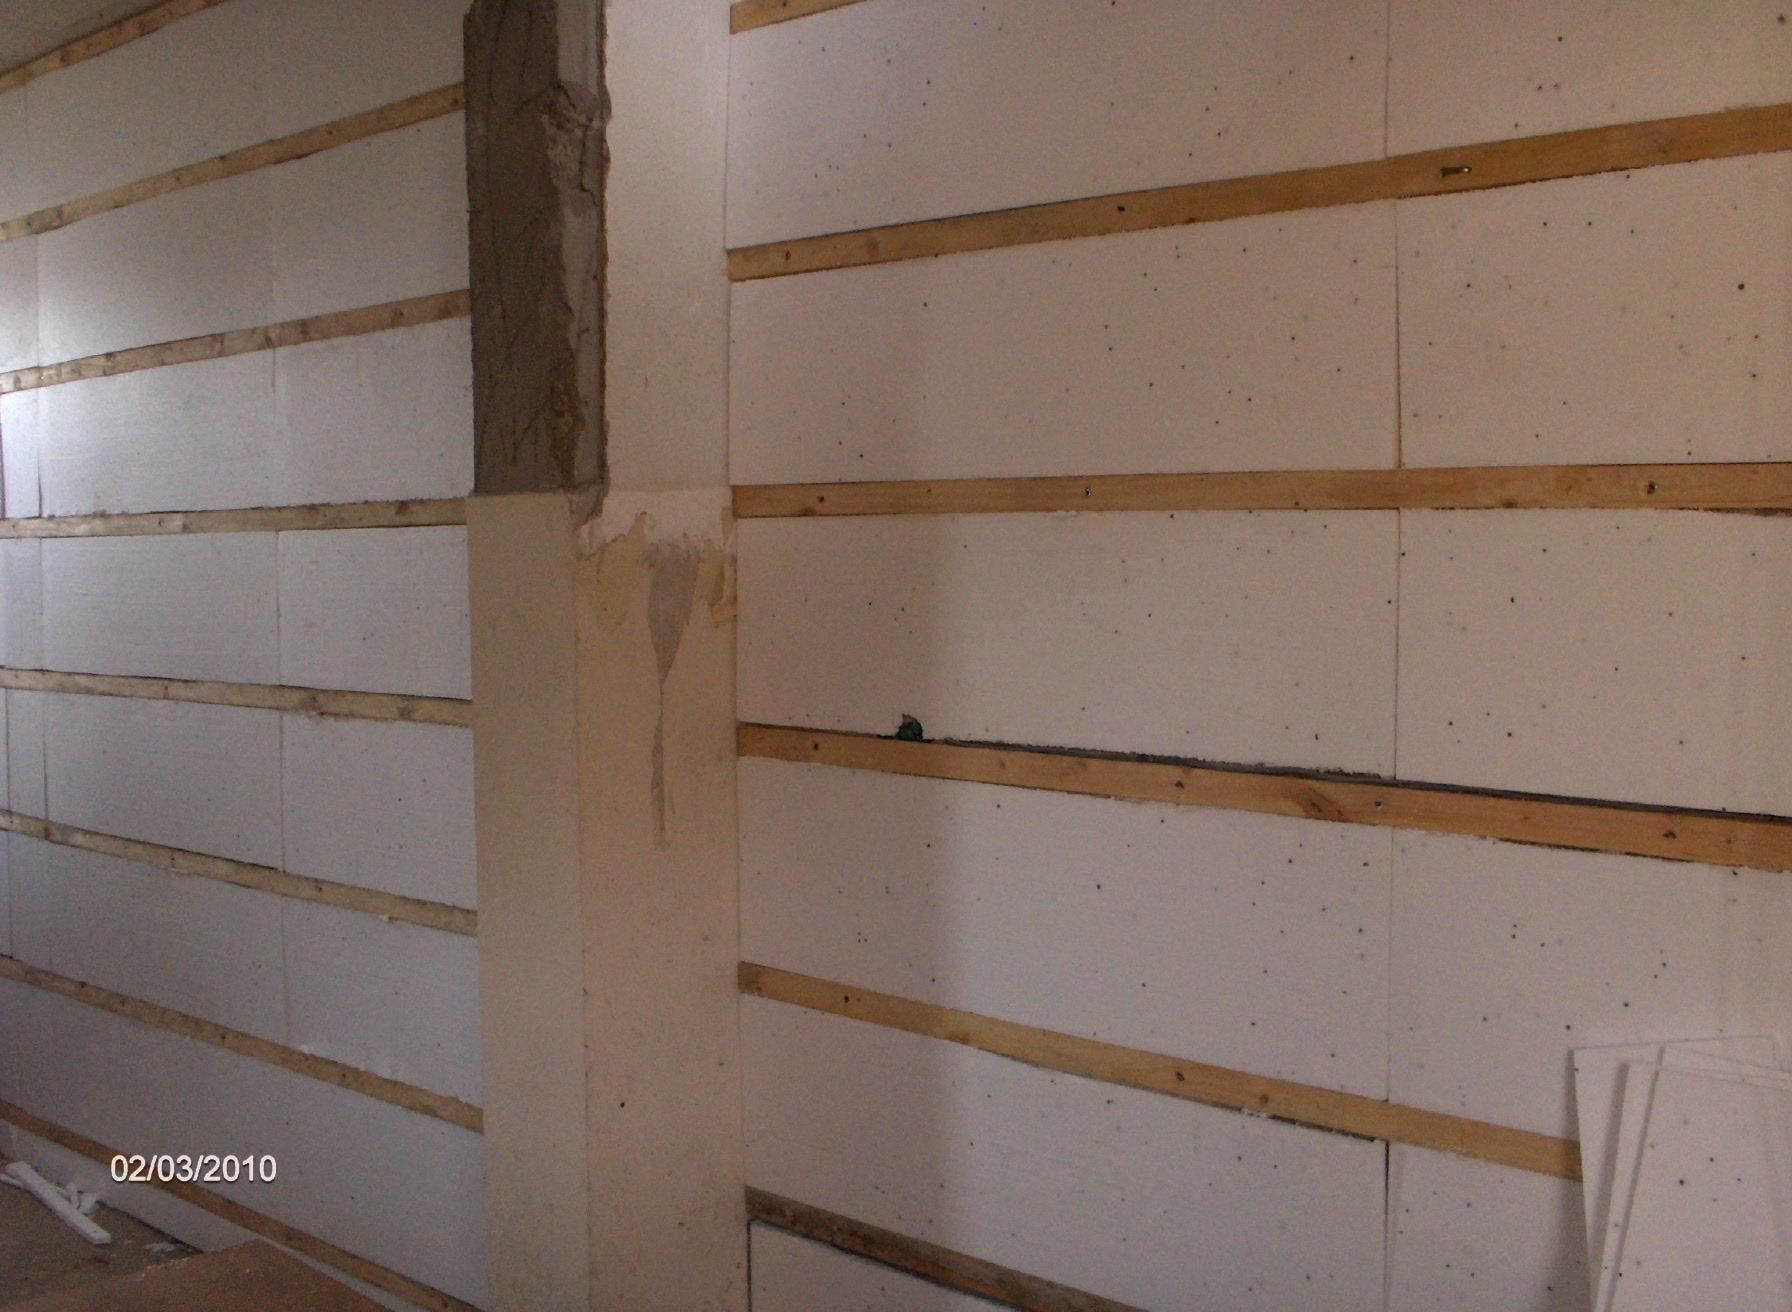 internal insulated walls